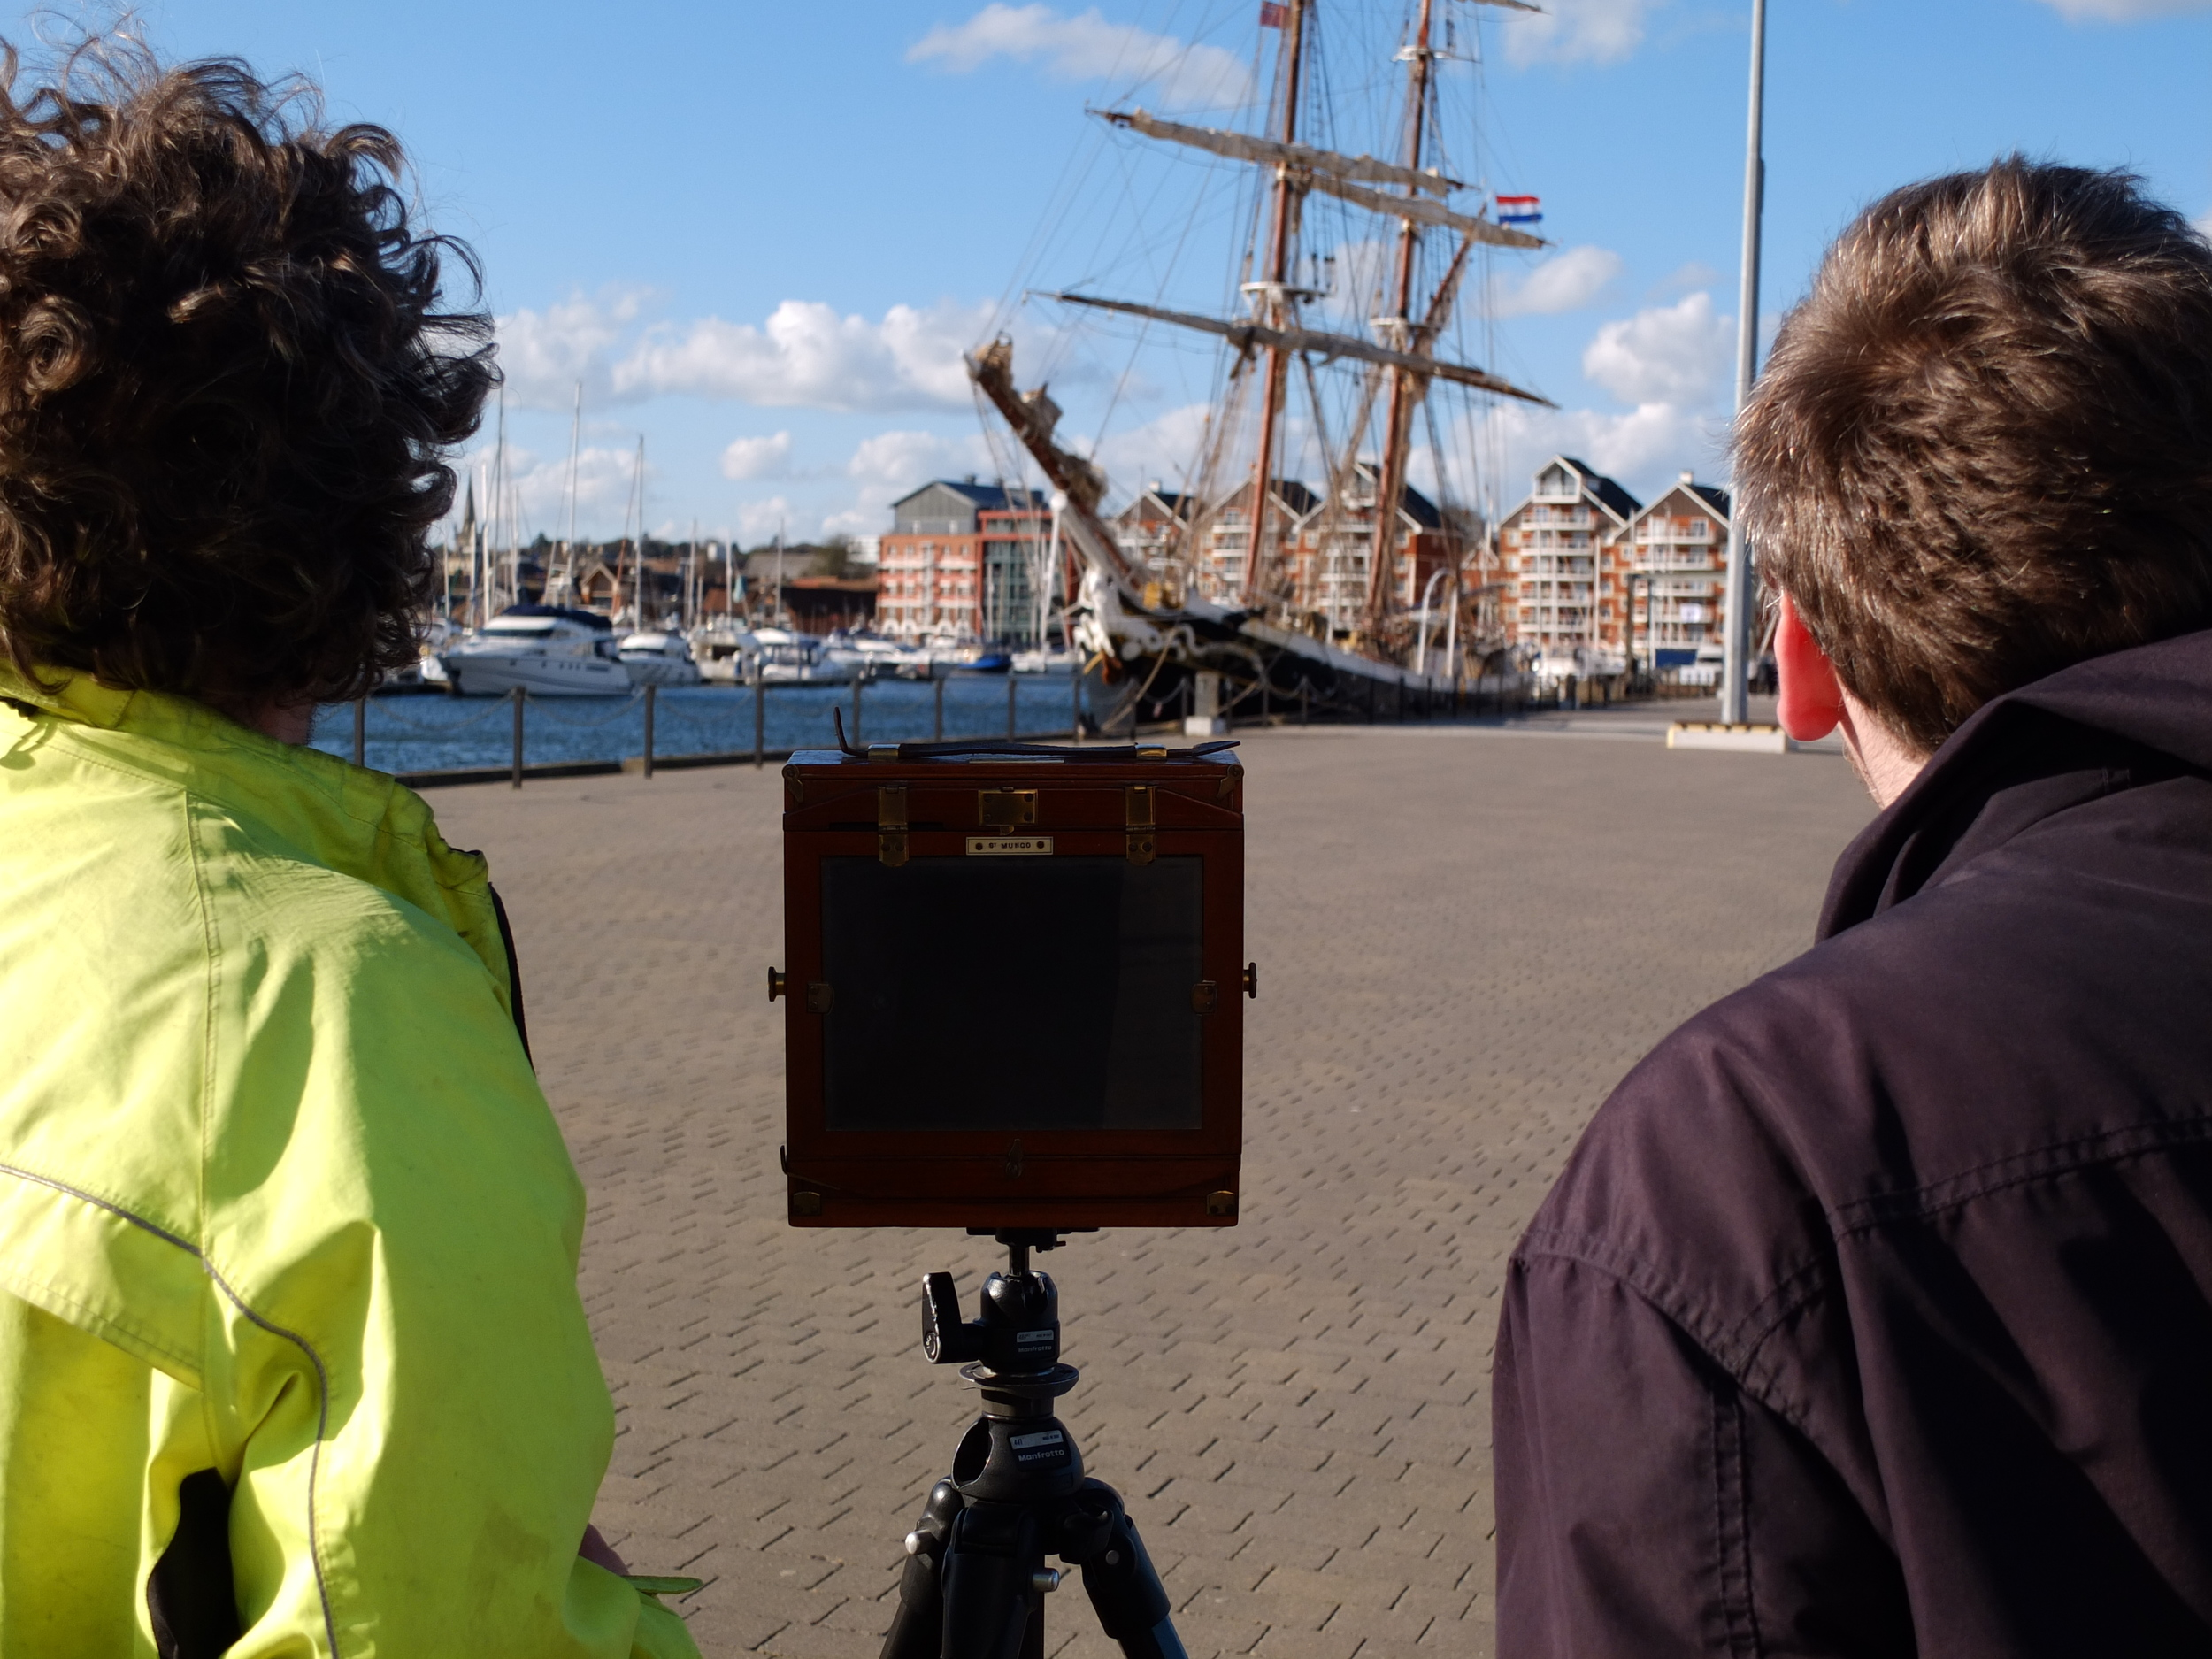 Tim and one of the star participants, Joel, taking a photo of a square rig on the marina